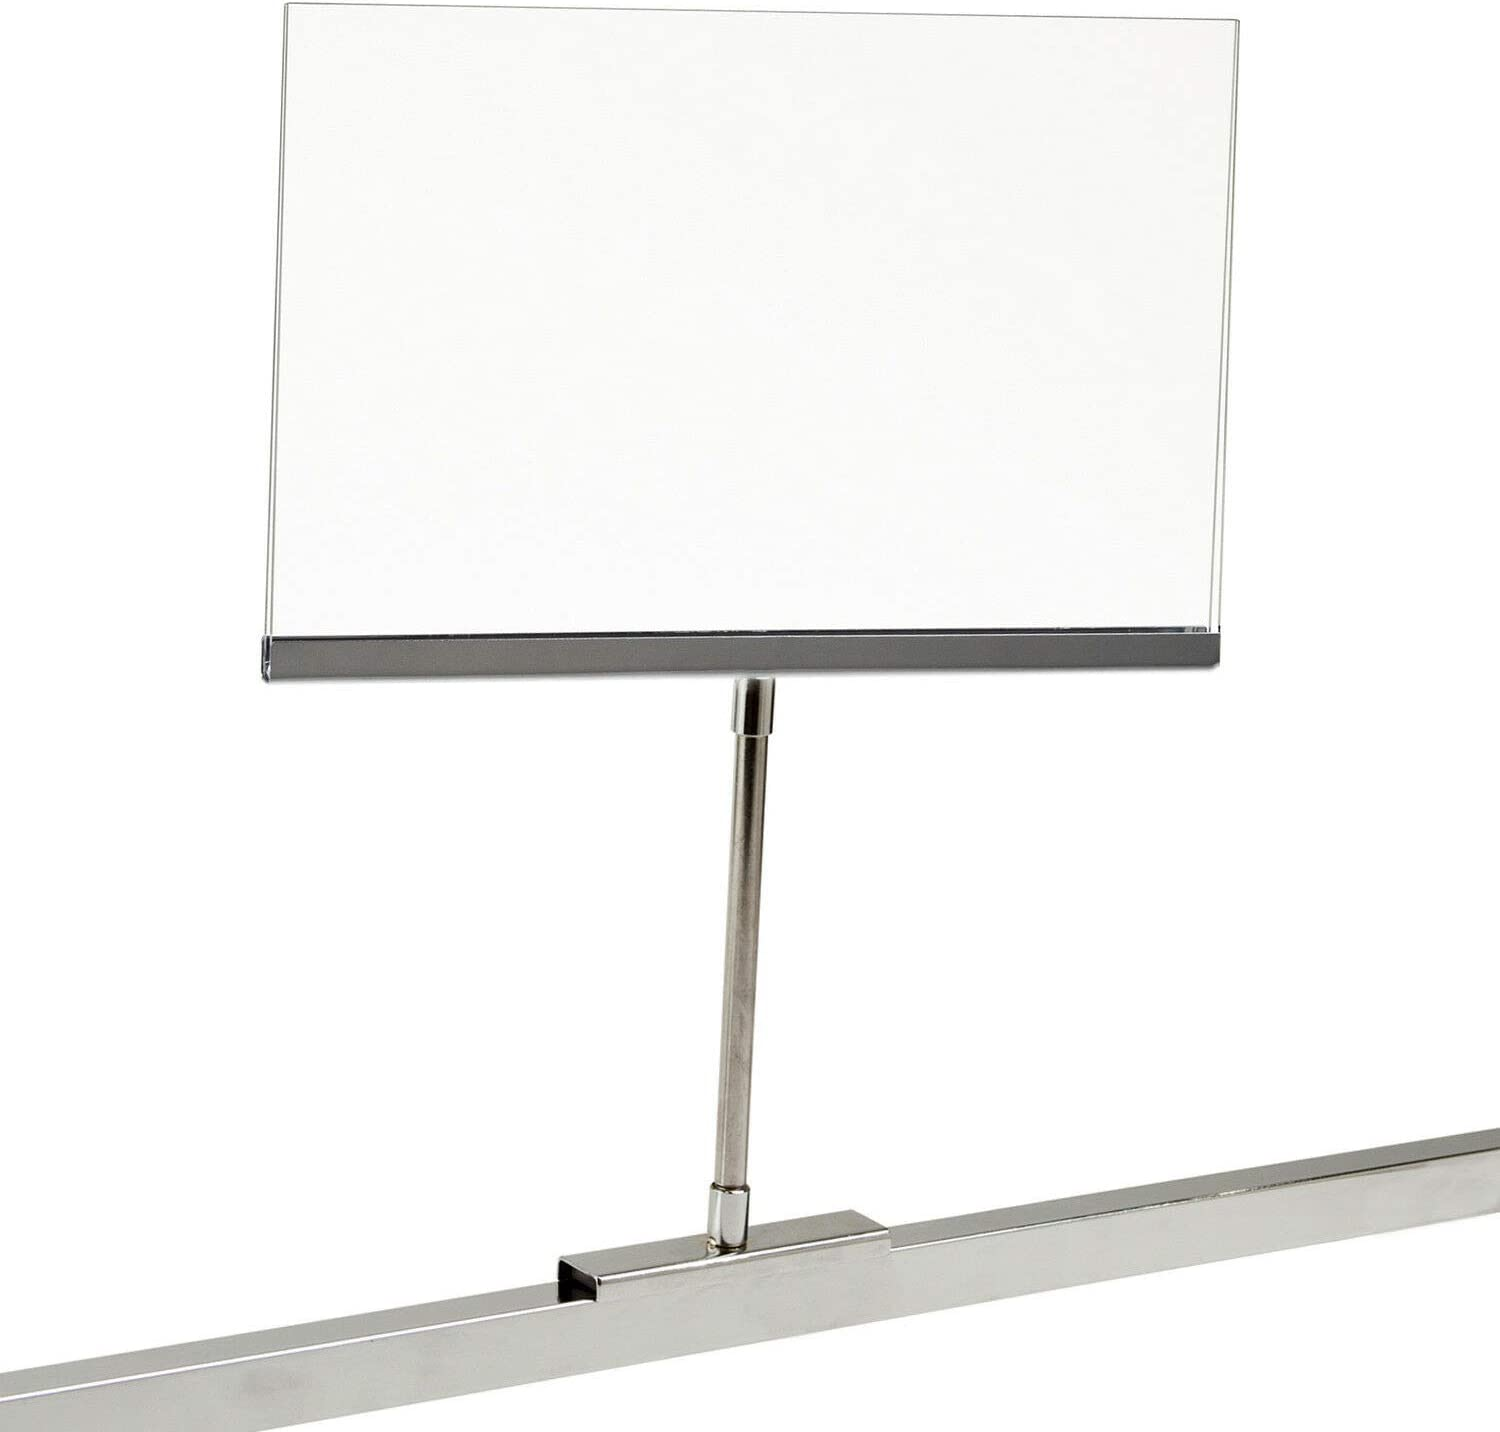 7 X 11 Card Display 20 Pack Retail Rack Acrylic Frame Magnetic Base Sign Holder 11.25 H